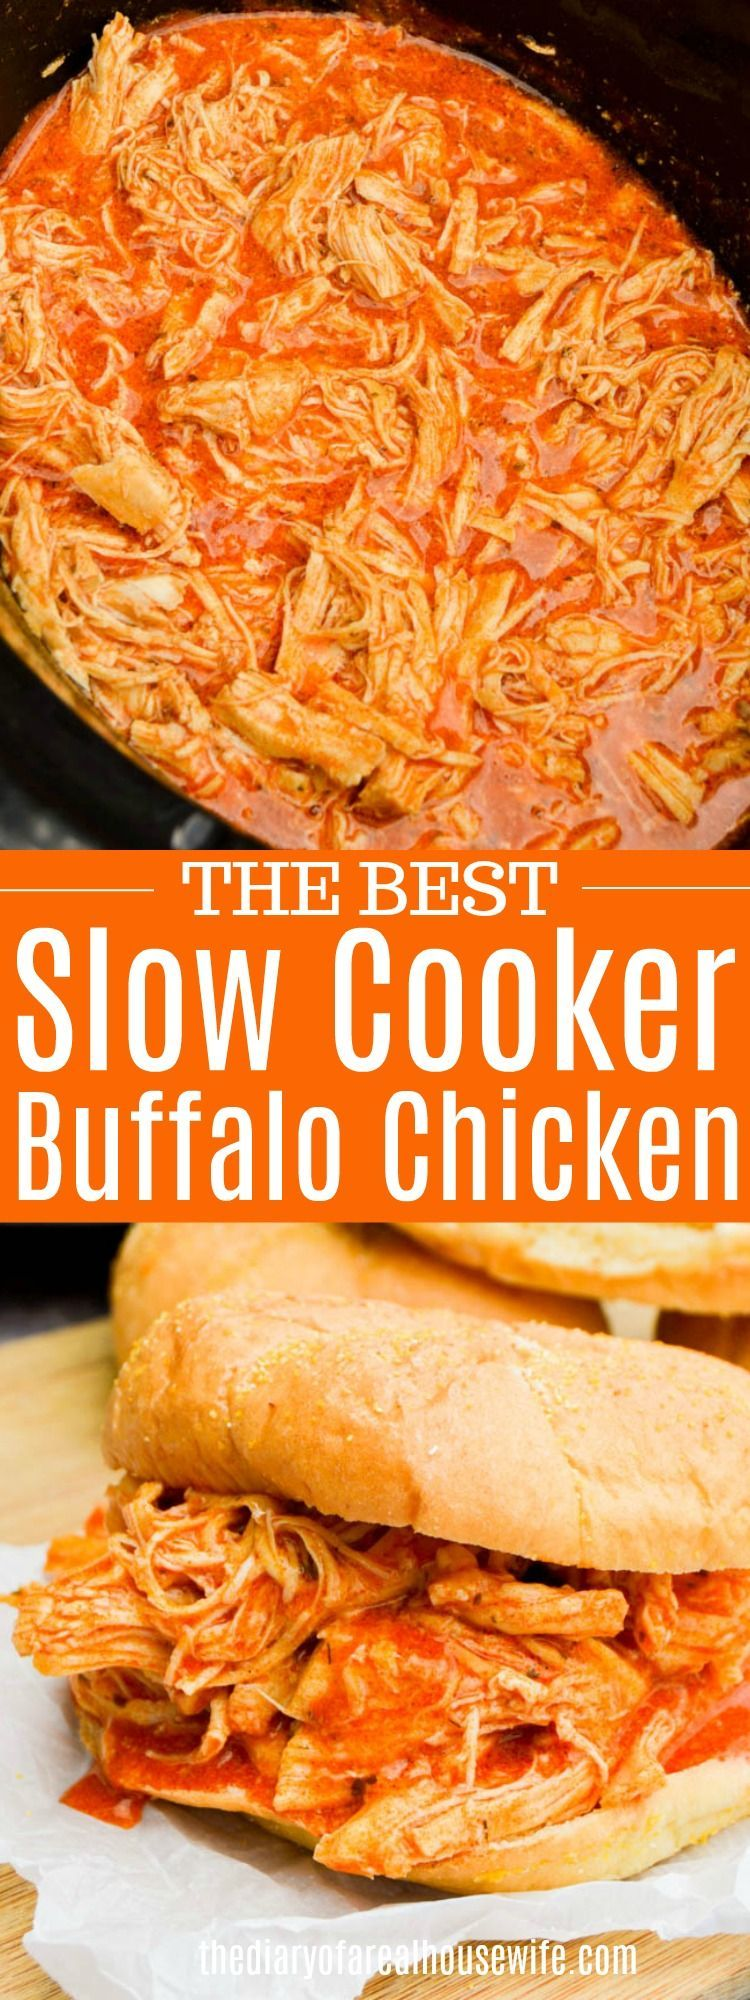 #ingredients #slowcooker #shredded #sandwich #chicken #buffalo #chicken #simple #cooker #three #hour...